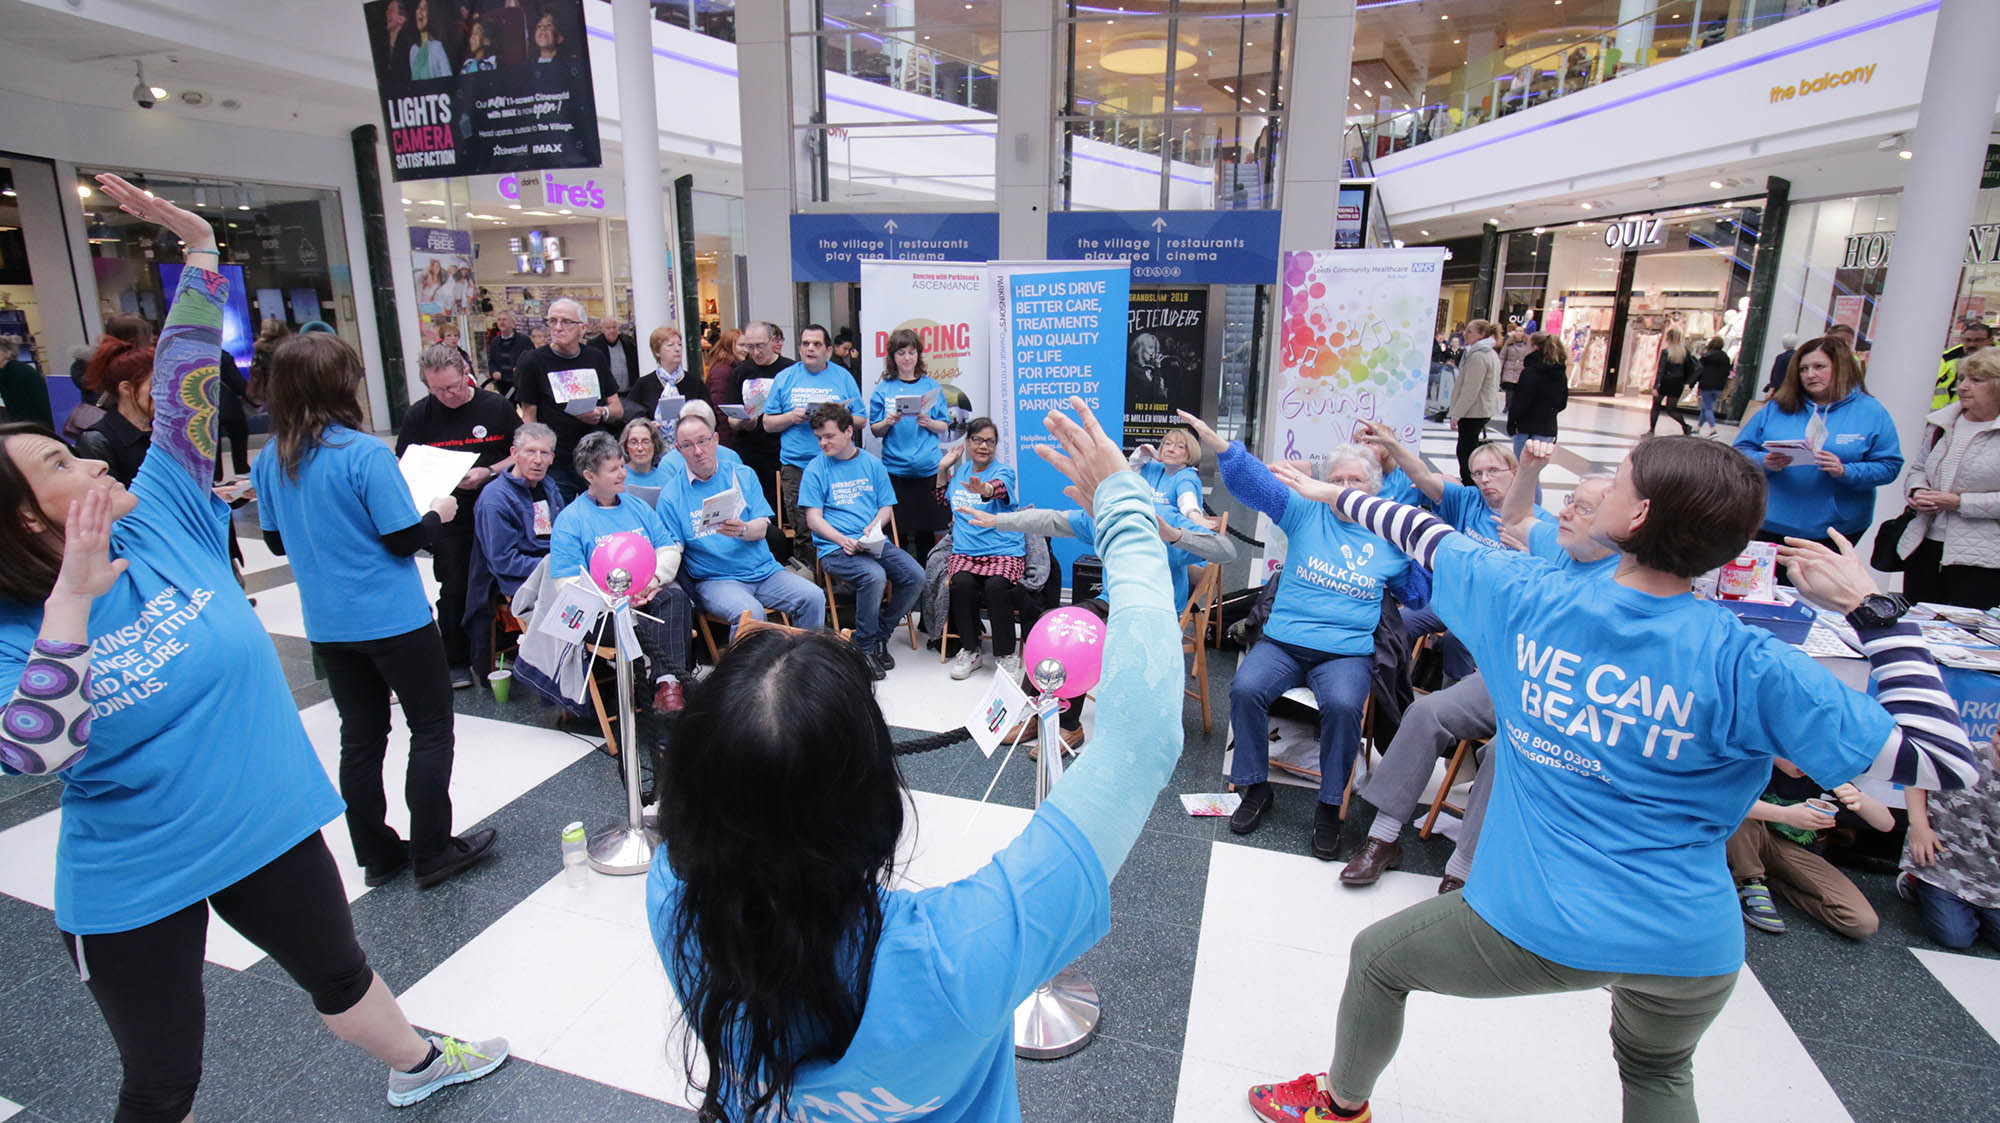 A Dancing with Parkinson's event that was held at the White Rose Centre, Leeds - classes are to start in Otley. Photograph by Lucy Barker